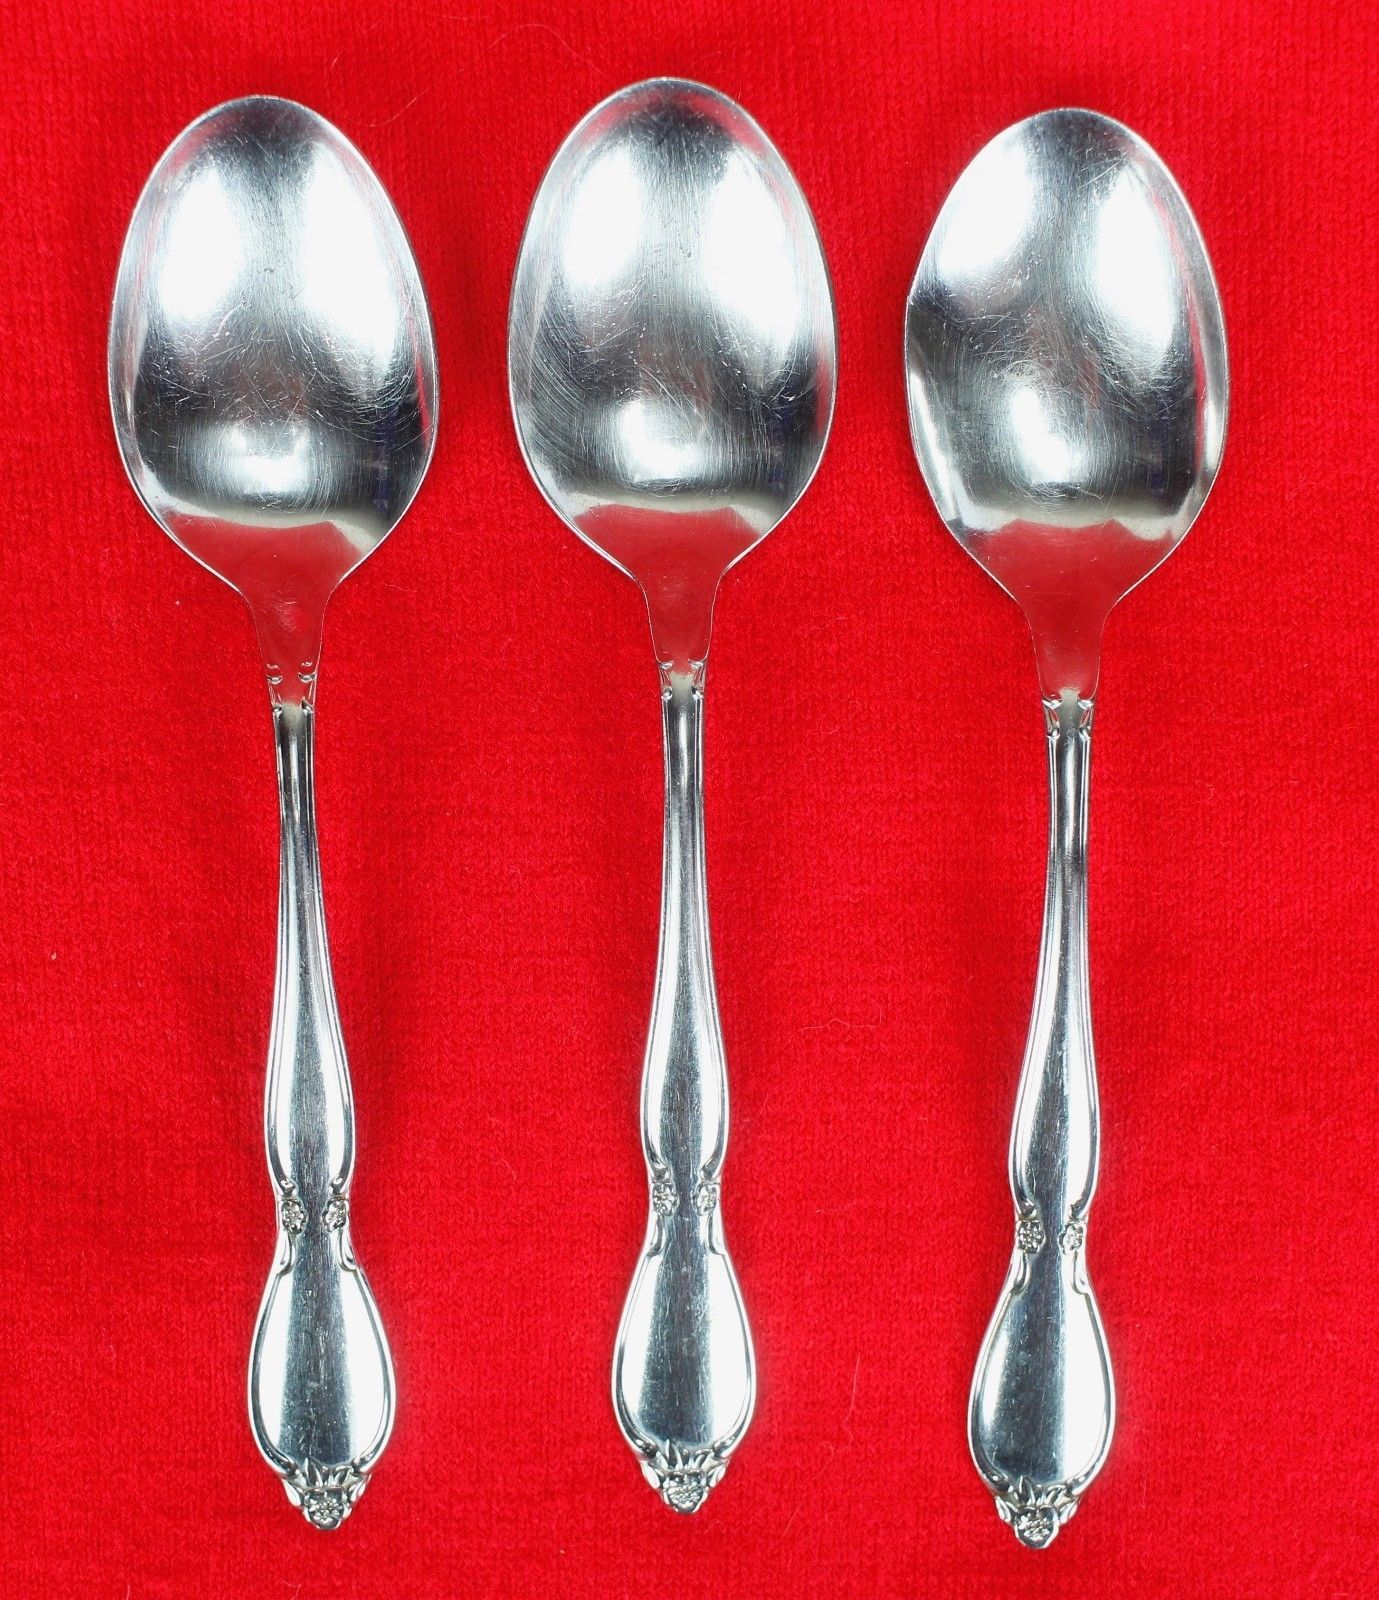 """3X Place Oval Table Spoons Oneida Chatelaine Stainless Glossy Flatware 6 3/4"""""""